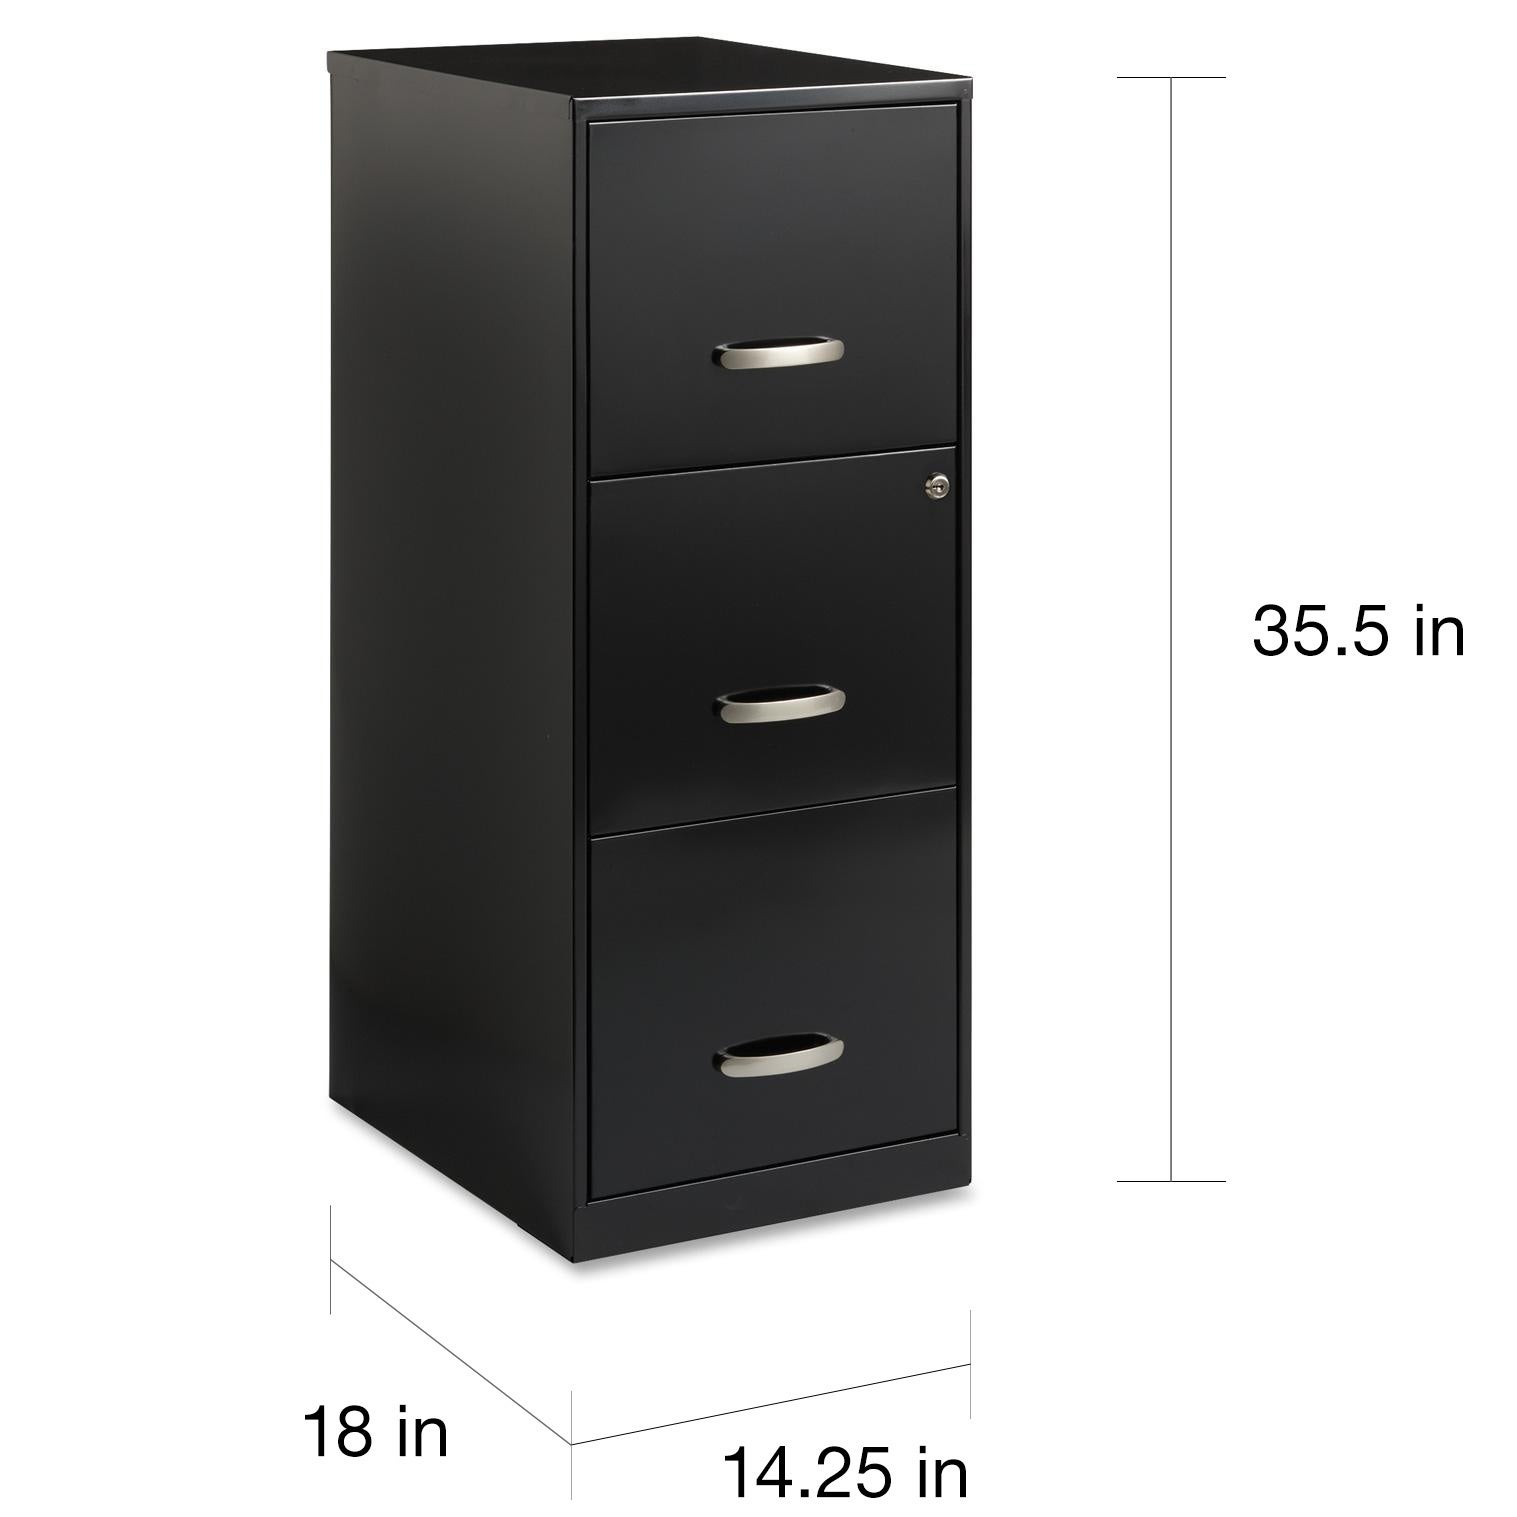 Beau Porch U0026 Den Barry Square Vernon 3 Drawer Black Steel File Cabinet   Free  Shipping Today   Overstock.com   15315653